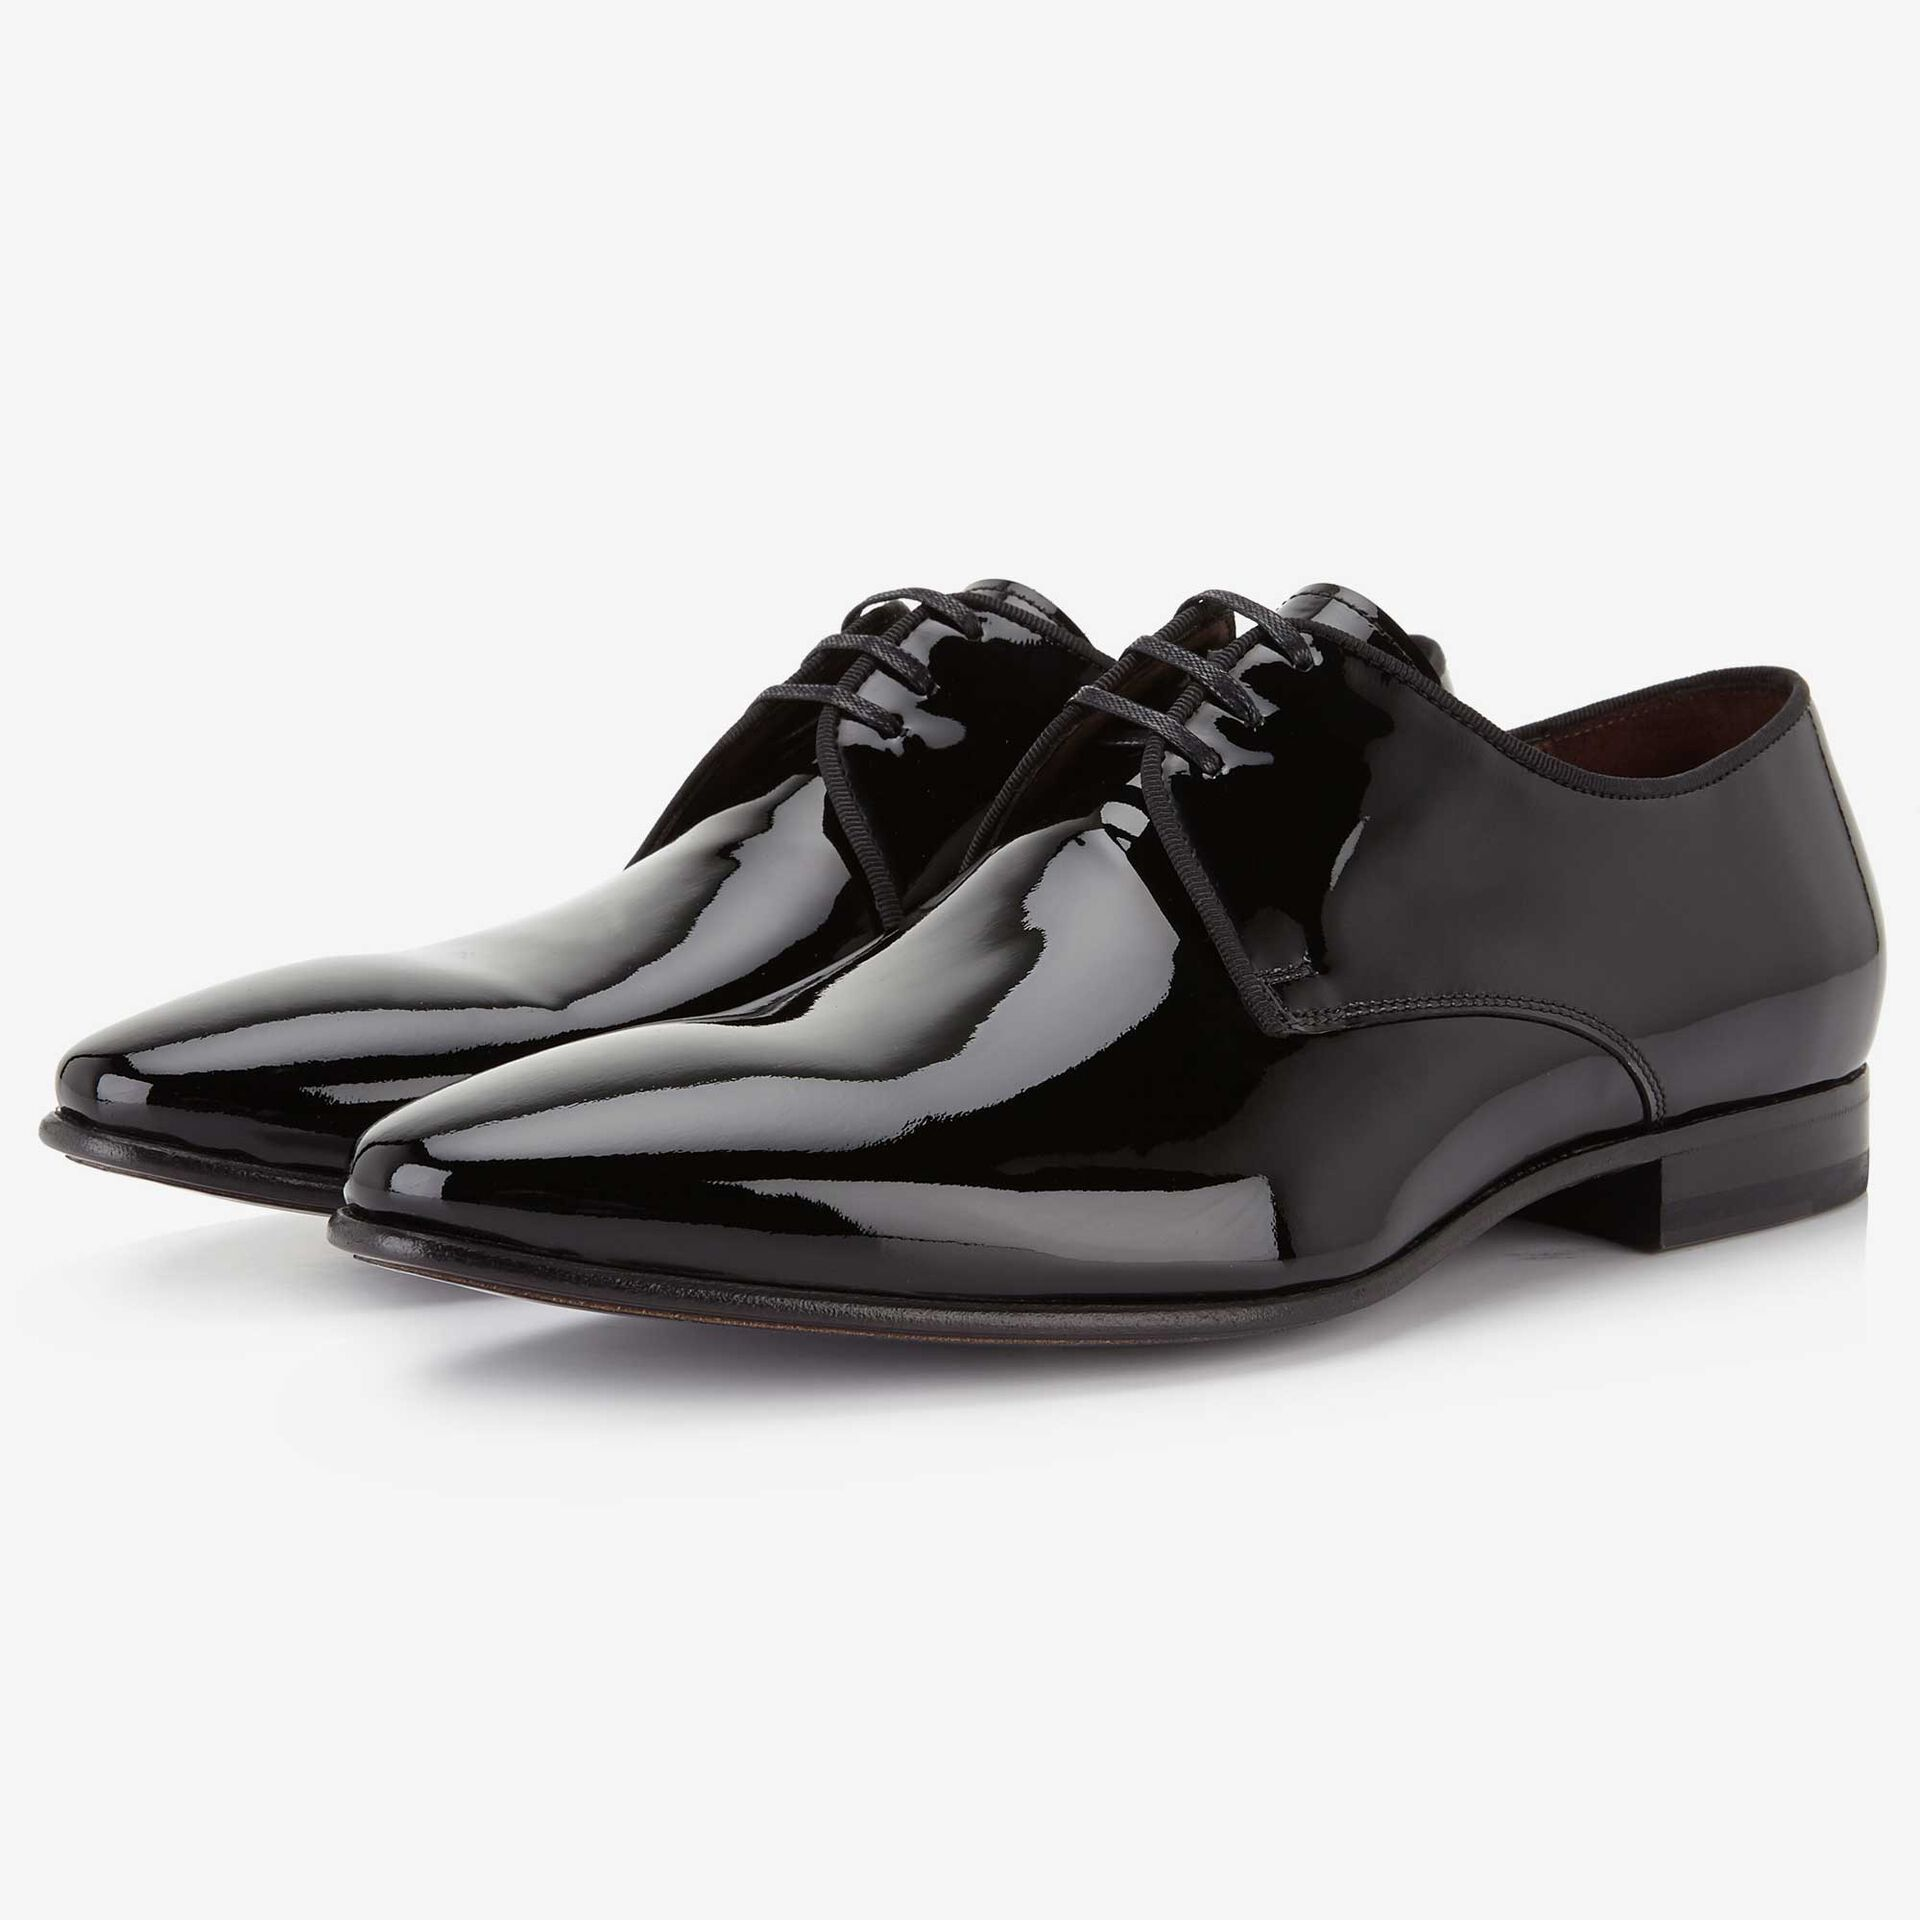 Black patent leather lace shoe